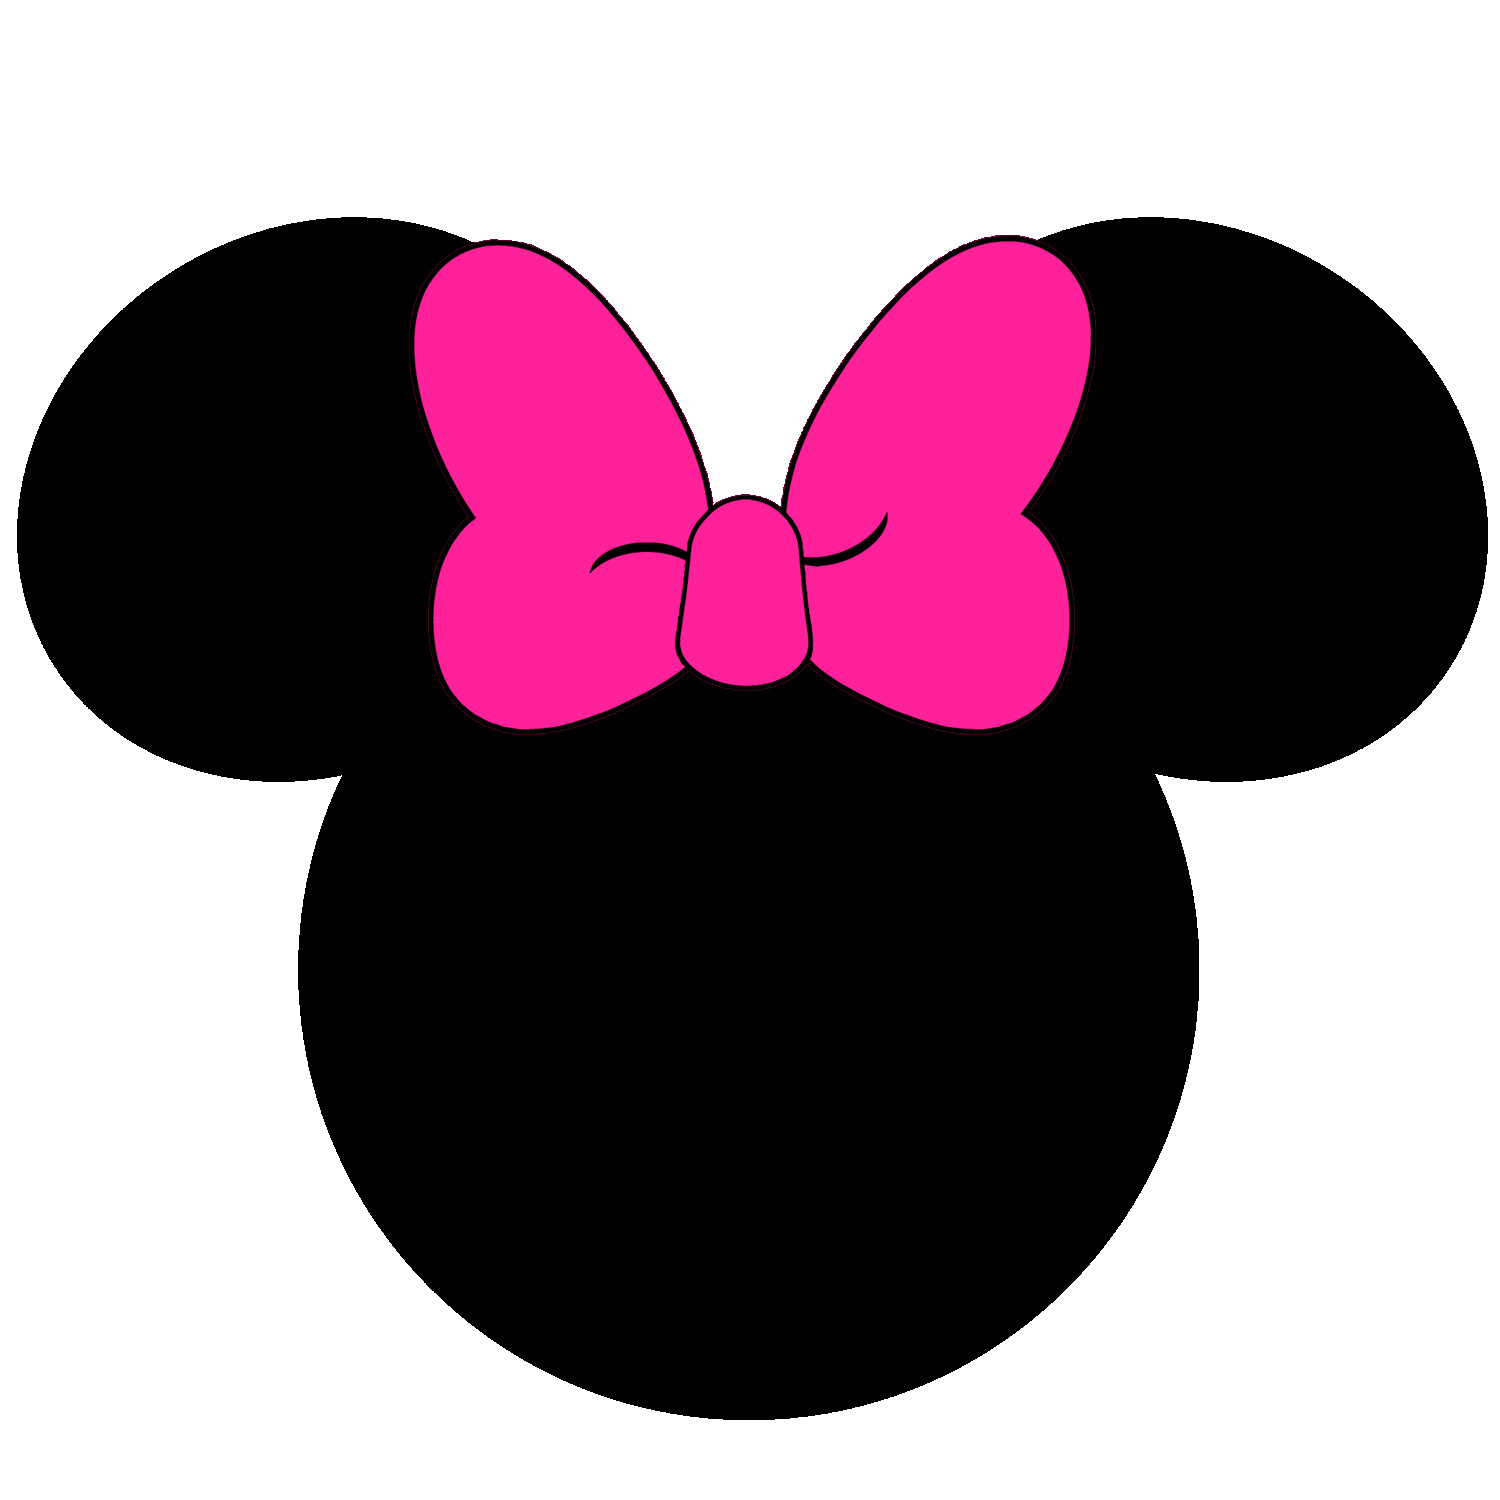 picture relating to Mickey Mouse Printable Cutouts identified as Minnie Mouse Intellect Silhouette at  No cost for